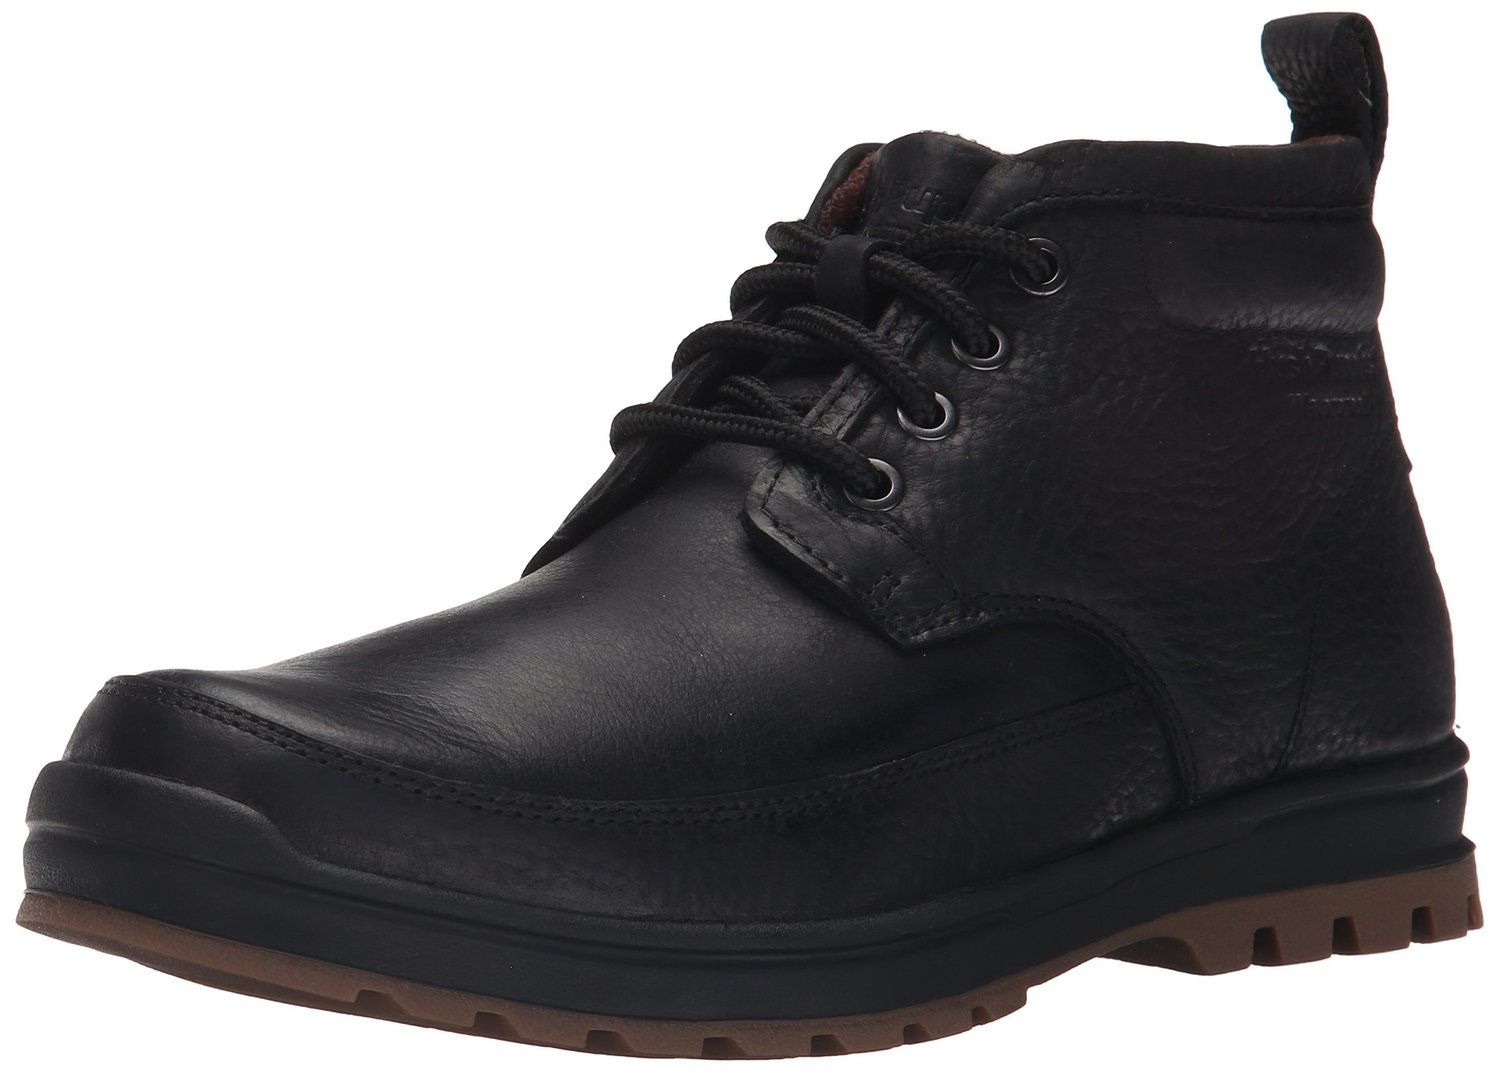 Hush Puppies Men S Dutch Abbott Chukka Boot Startling Review Available Here Men S Boots Boots Boots Men Chukka Boots